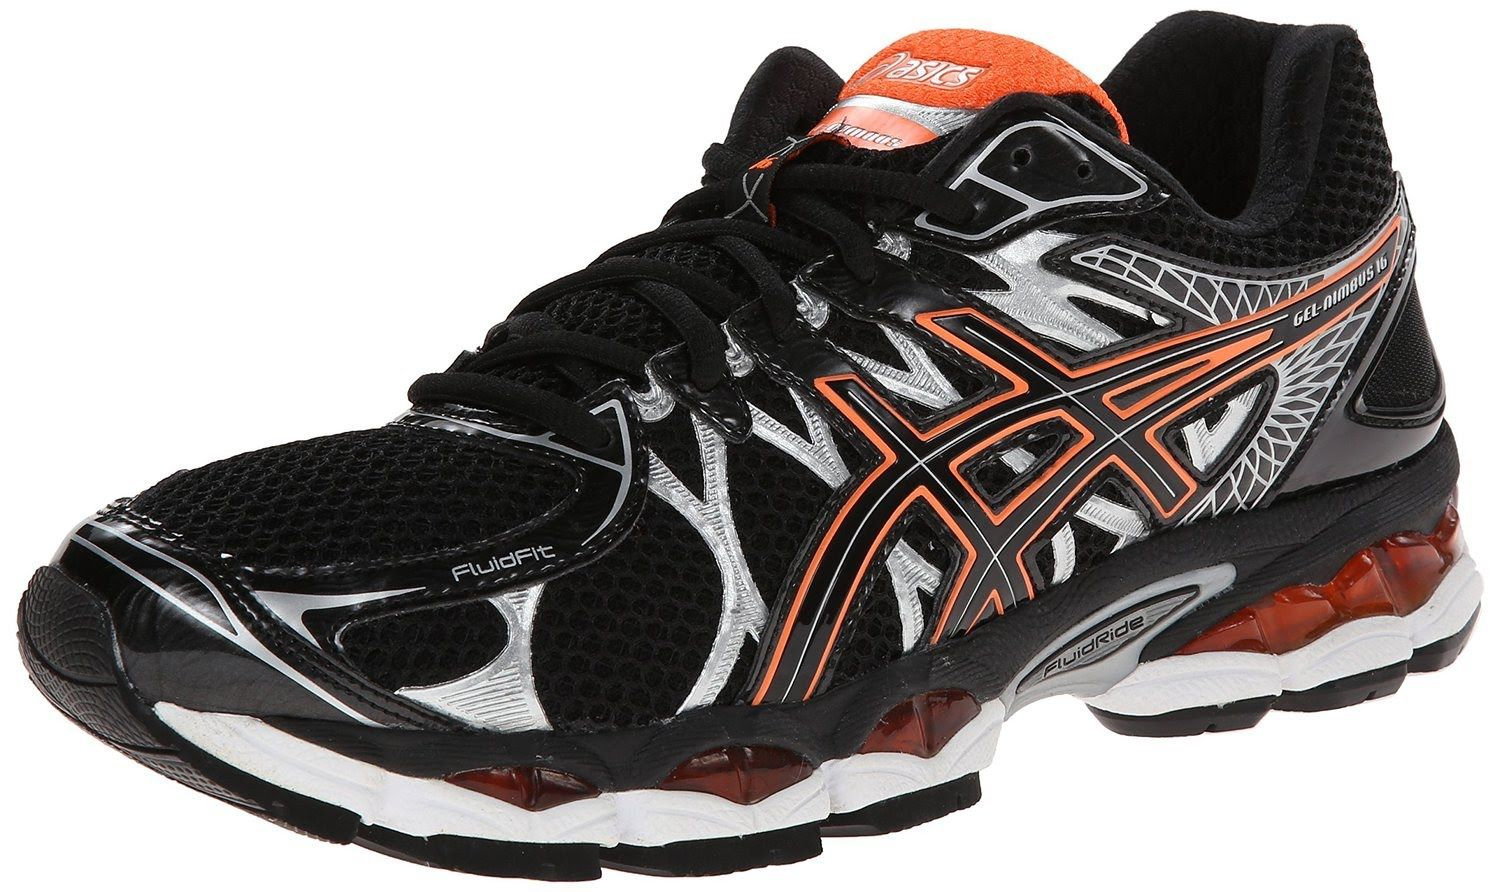 538b8c3dfc2f ASICS Men s GEL Nimbus 16 Running Shoe